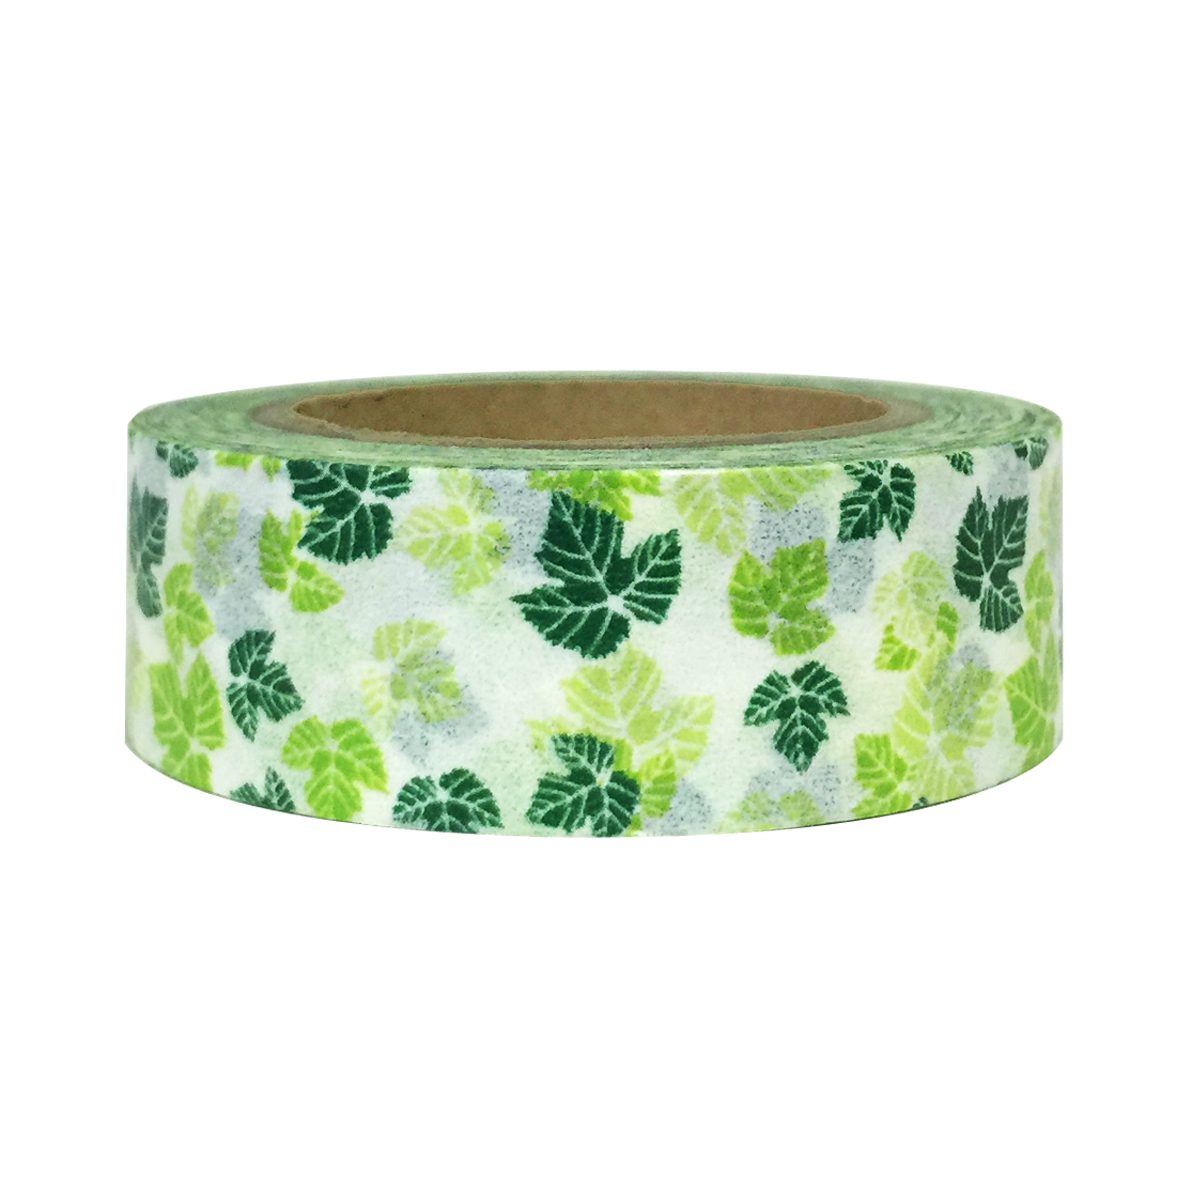 Wrapables® Colorful Patterns Washi Masking Tape, Green Maple Leaves